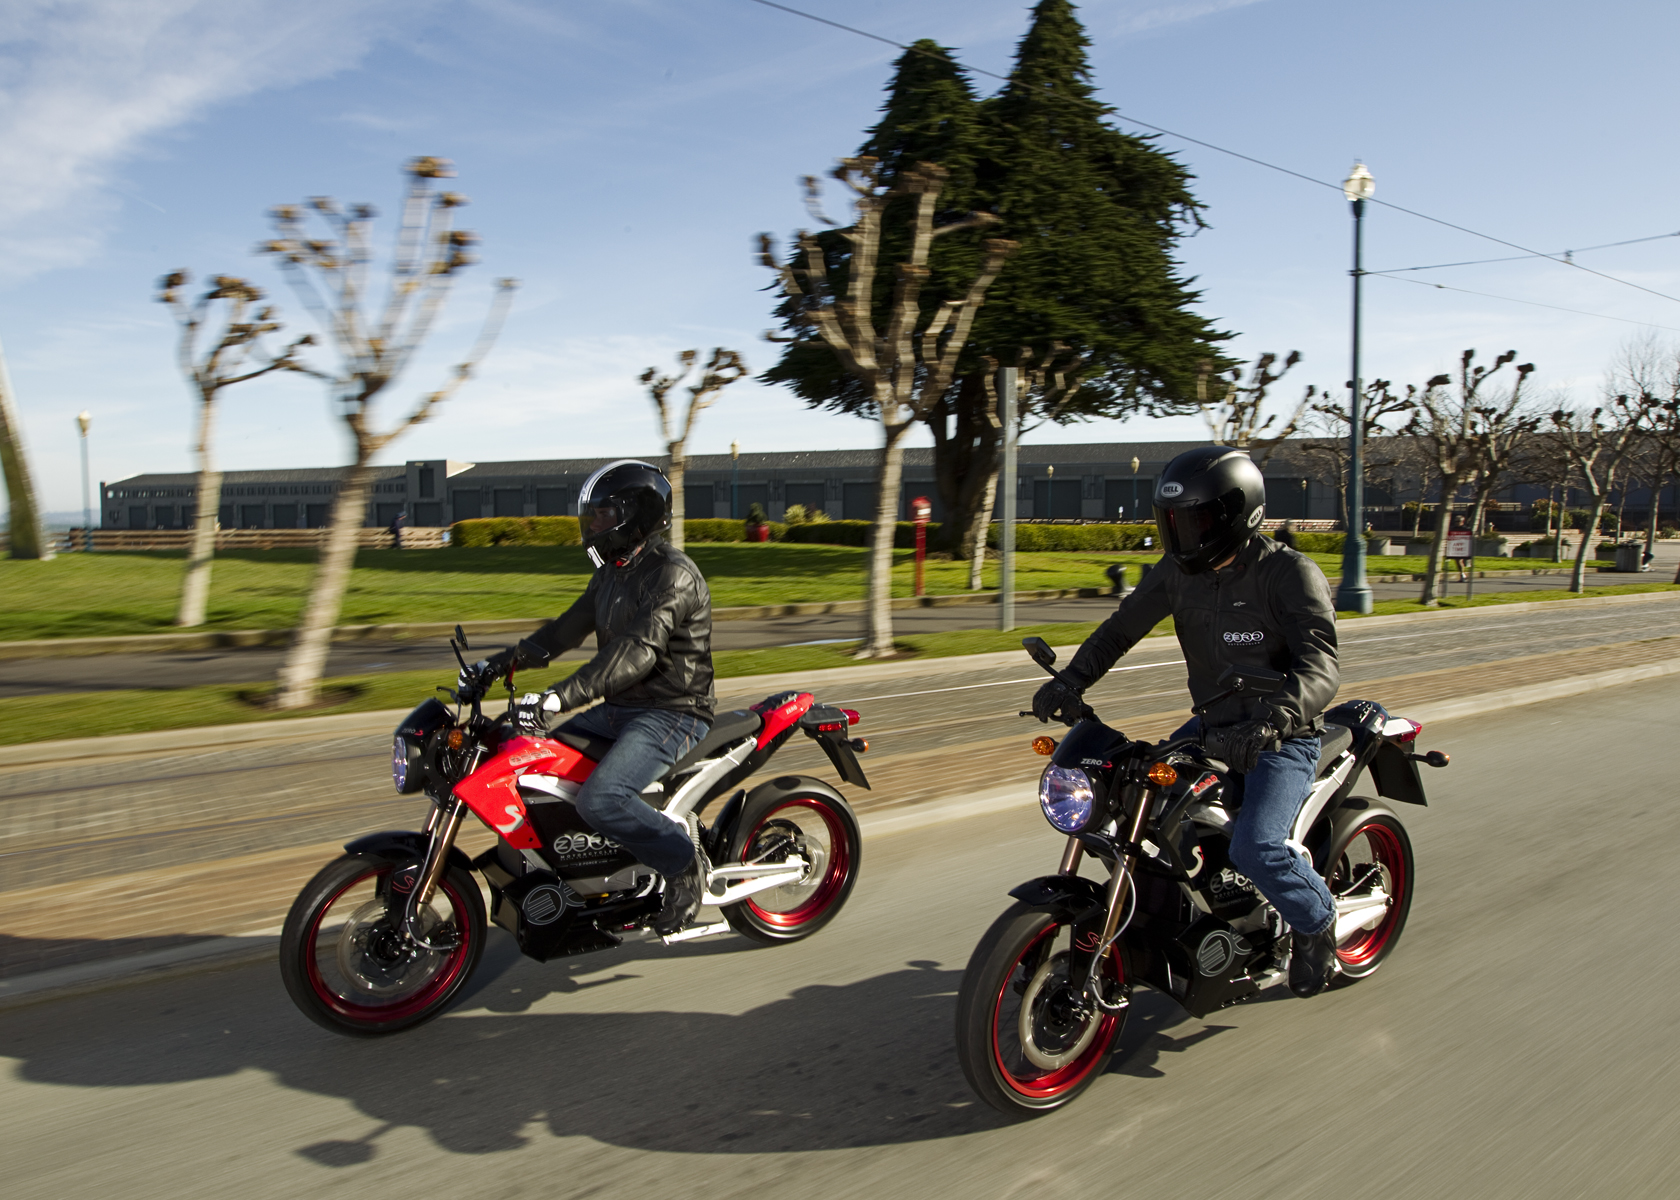 '.2011 Zero S Electric Motorcycle: Pair, Cruising in the City.'